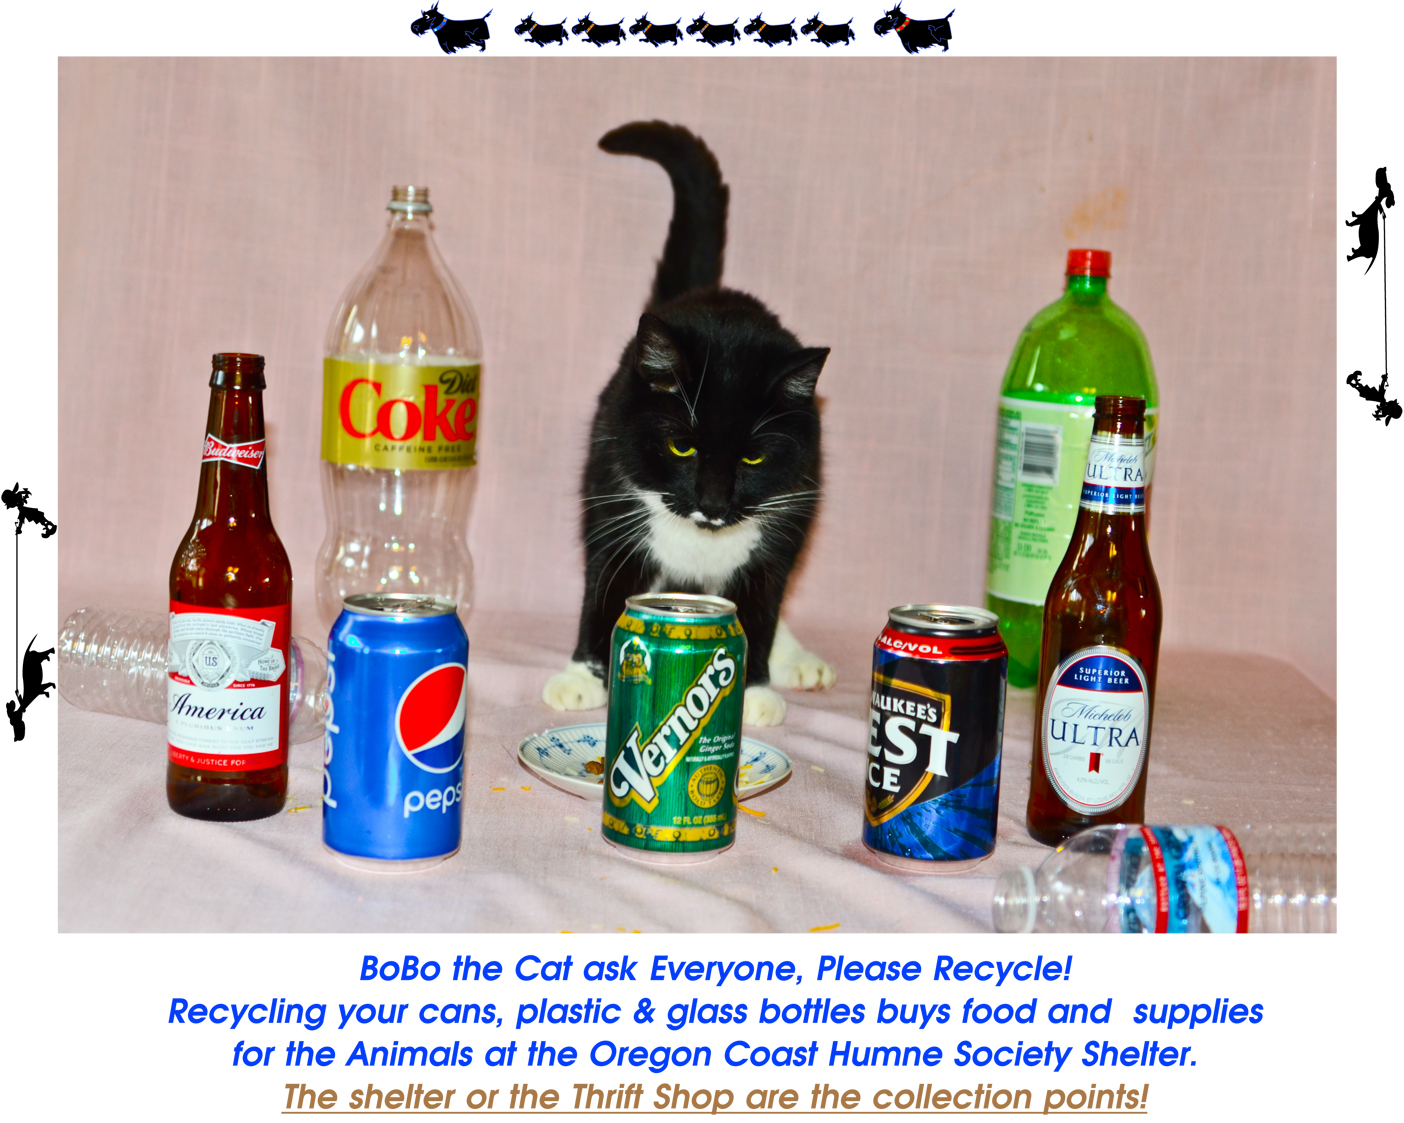 Your bottles and cans can help the homeless pets at our shelter